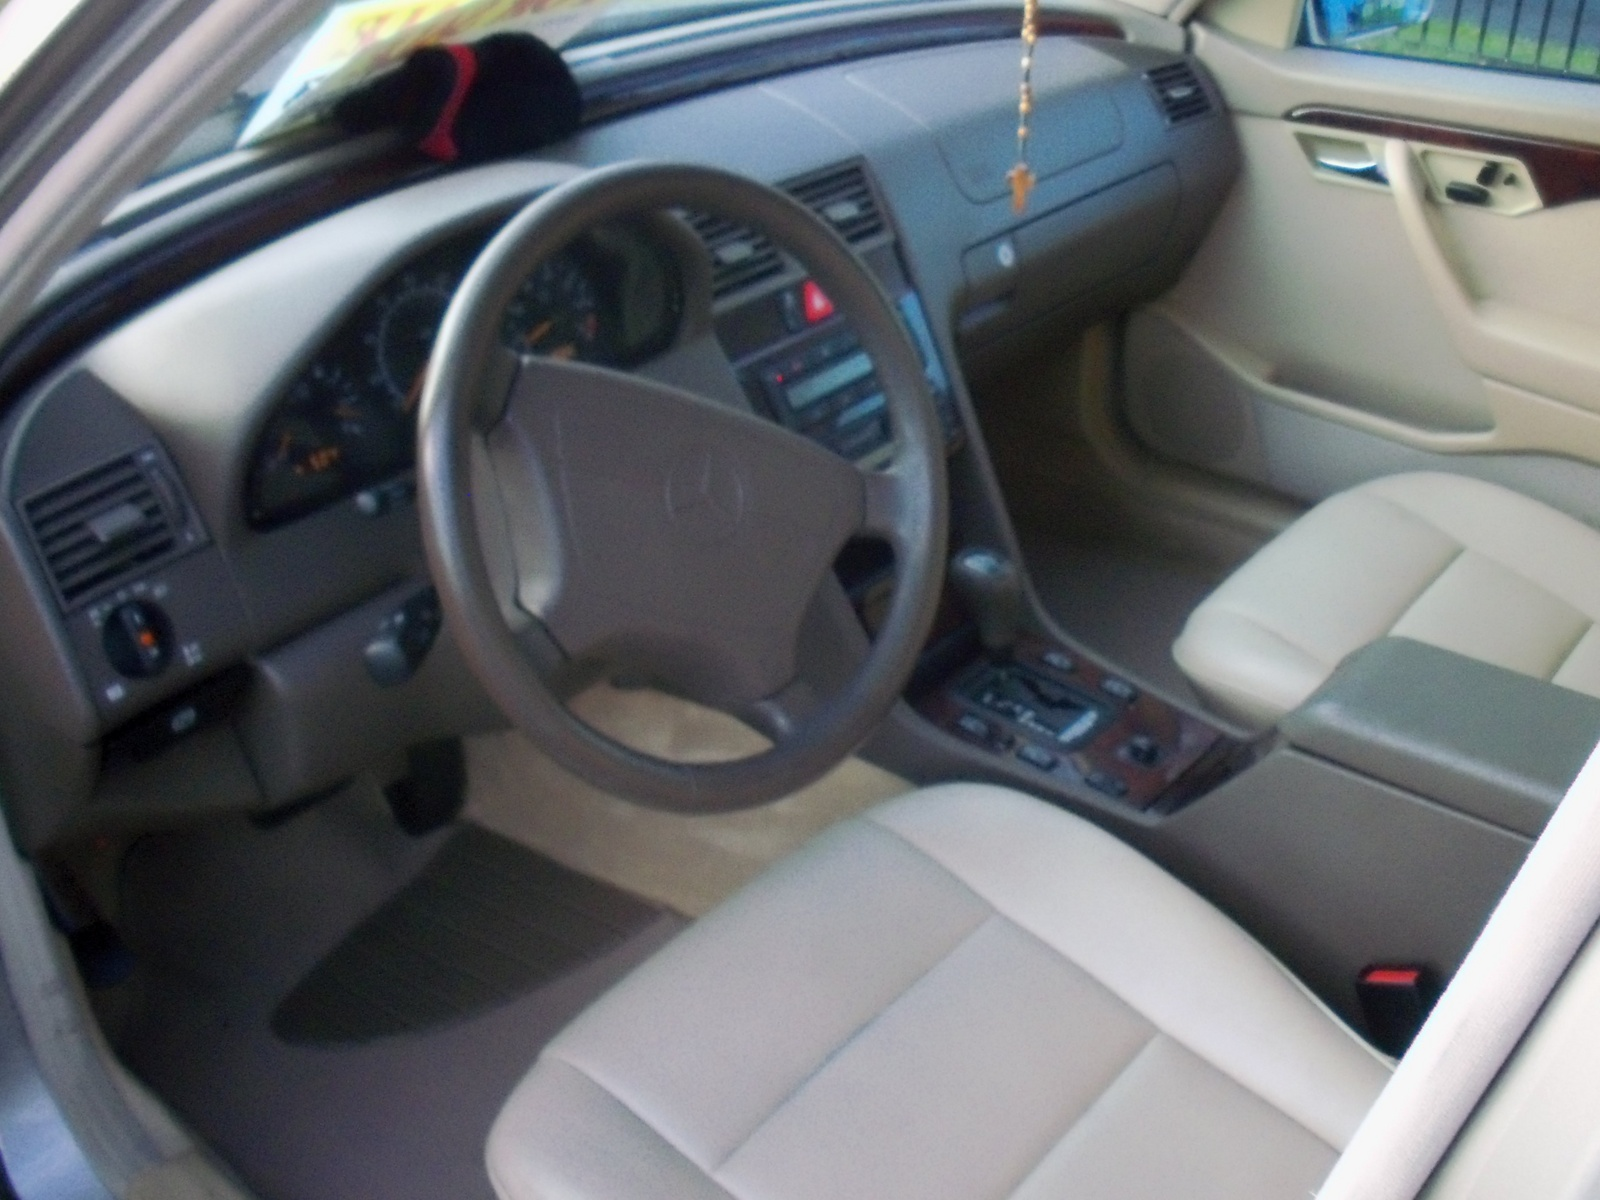 1999 Mercedes C280 Interior Pictures To Pin On Pinterest